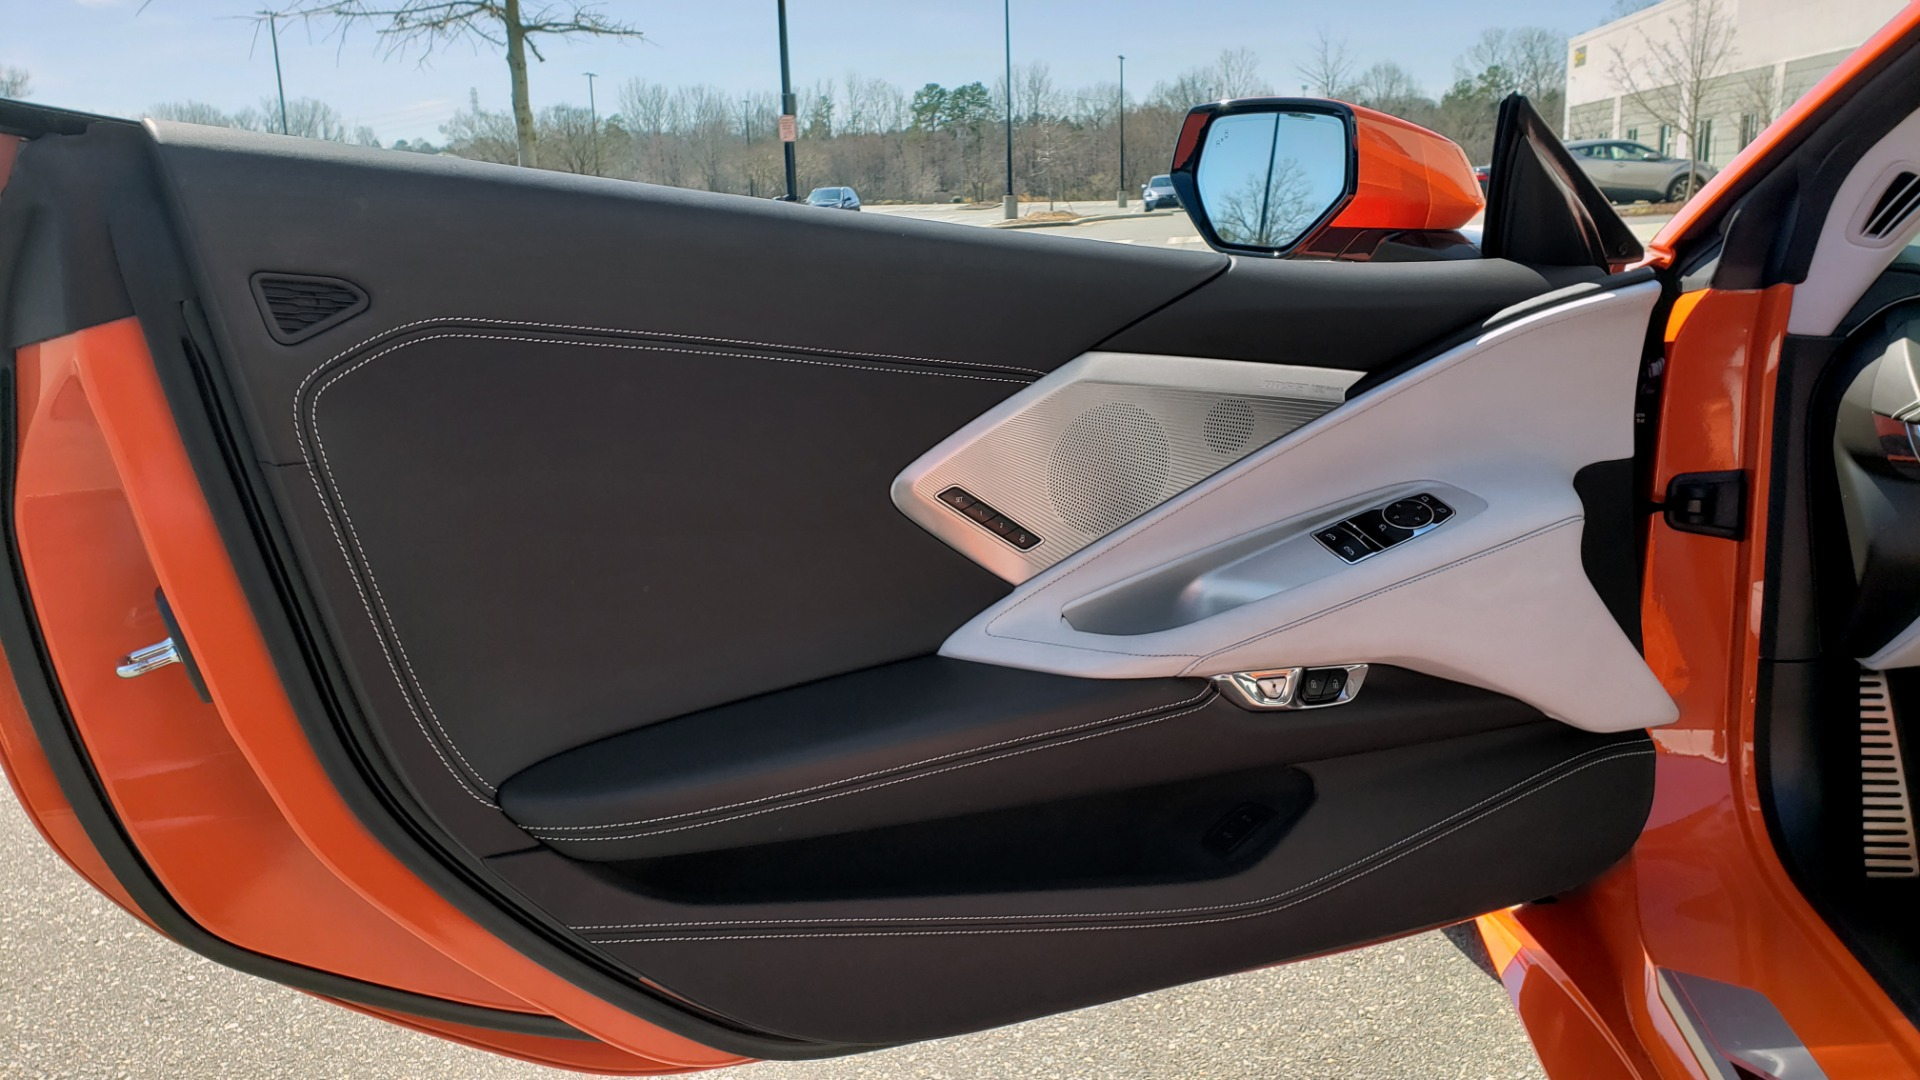 Used 2020 Chevrolet CORVETTE C8 STINGRAY 3LT COUPE / NAV / BOSE / CAMERA / LIKE NEW for sale Sold at Formula Imports in Charlotte NC 28227 44